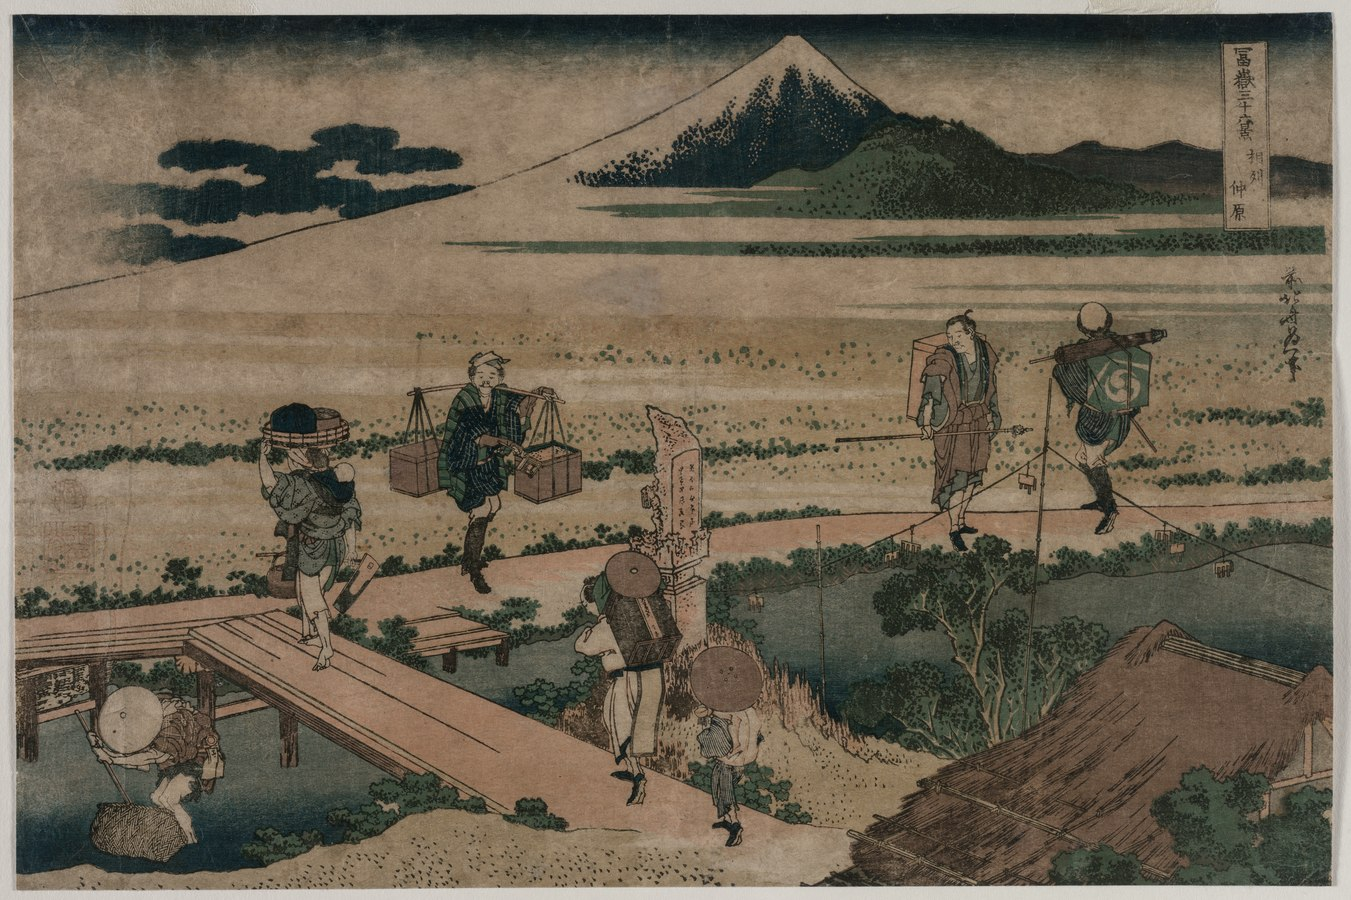 A View of Mount Fuji and Travellers by a Bridge (1940.997)